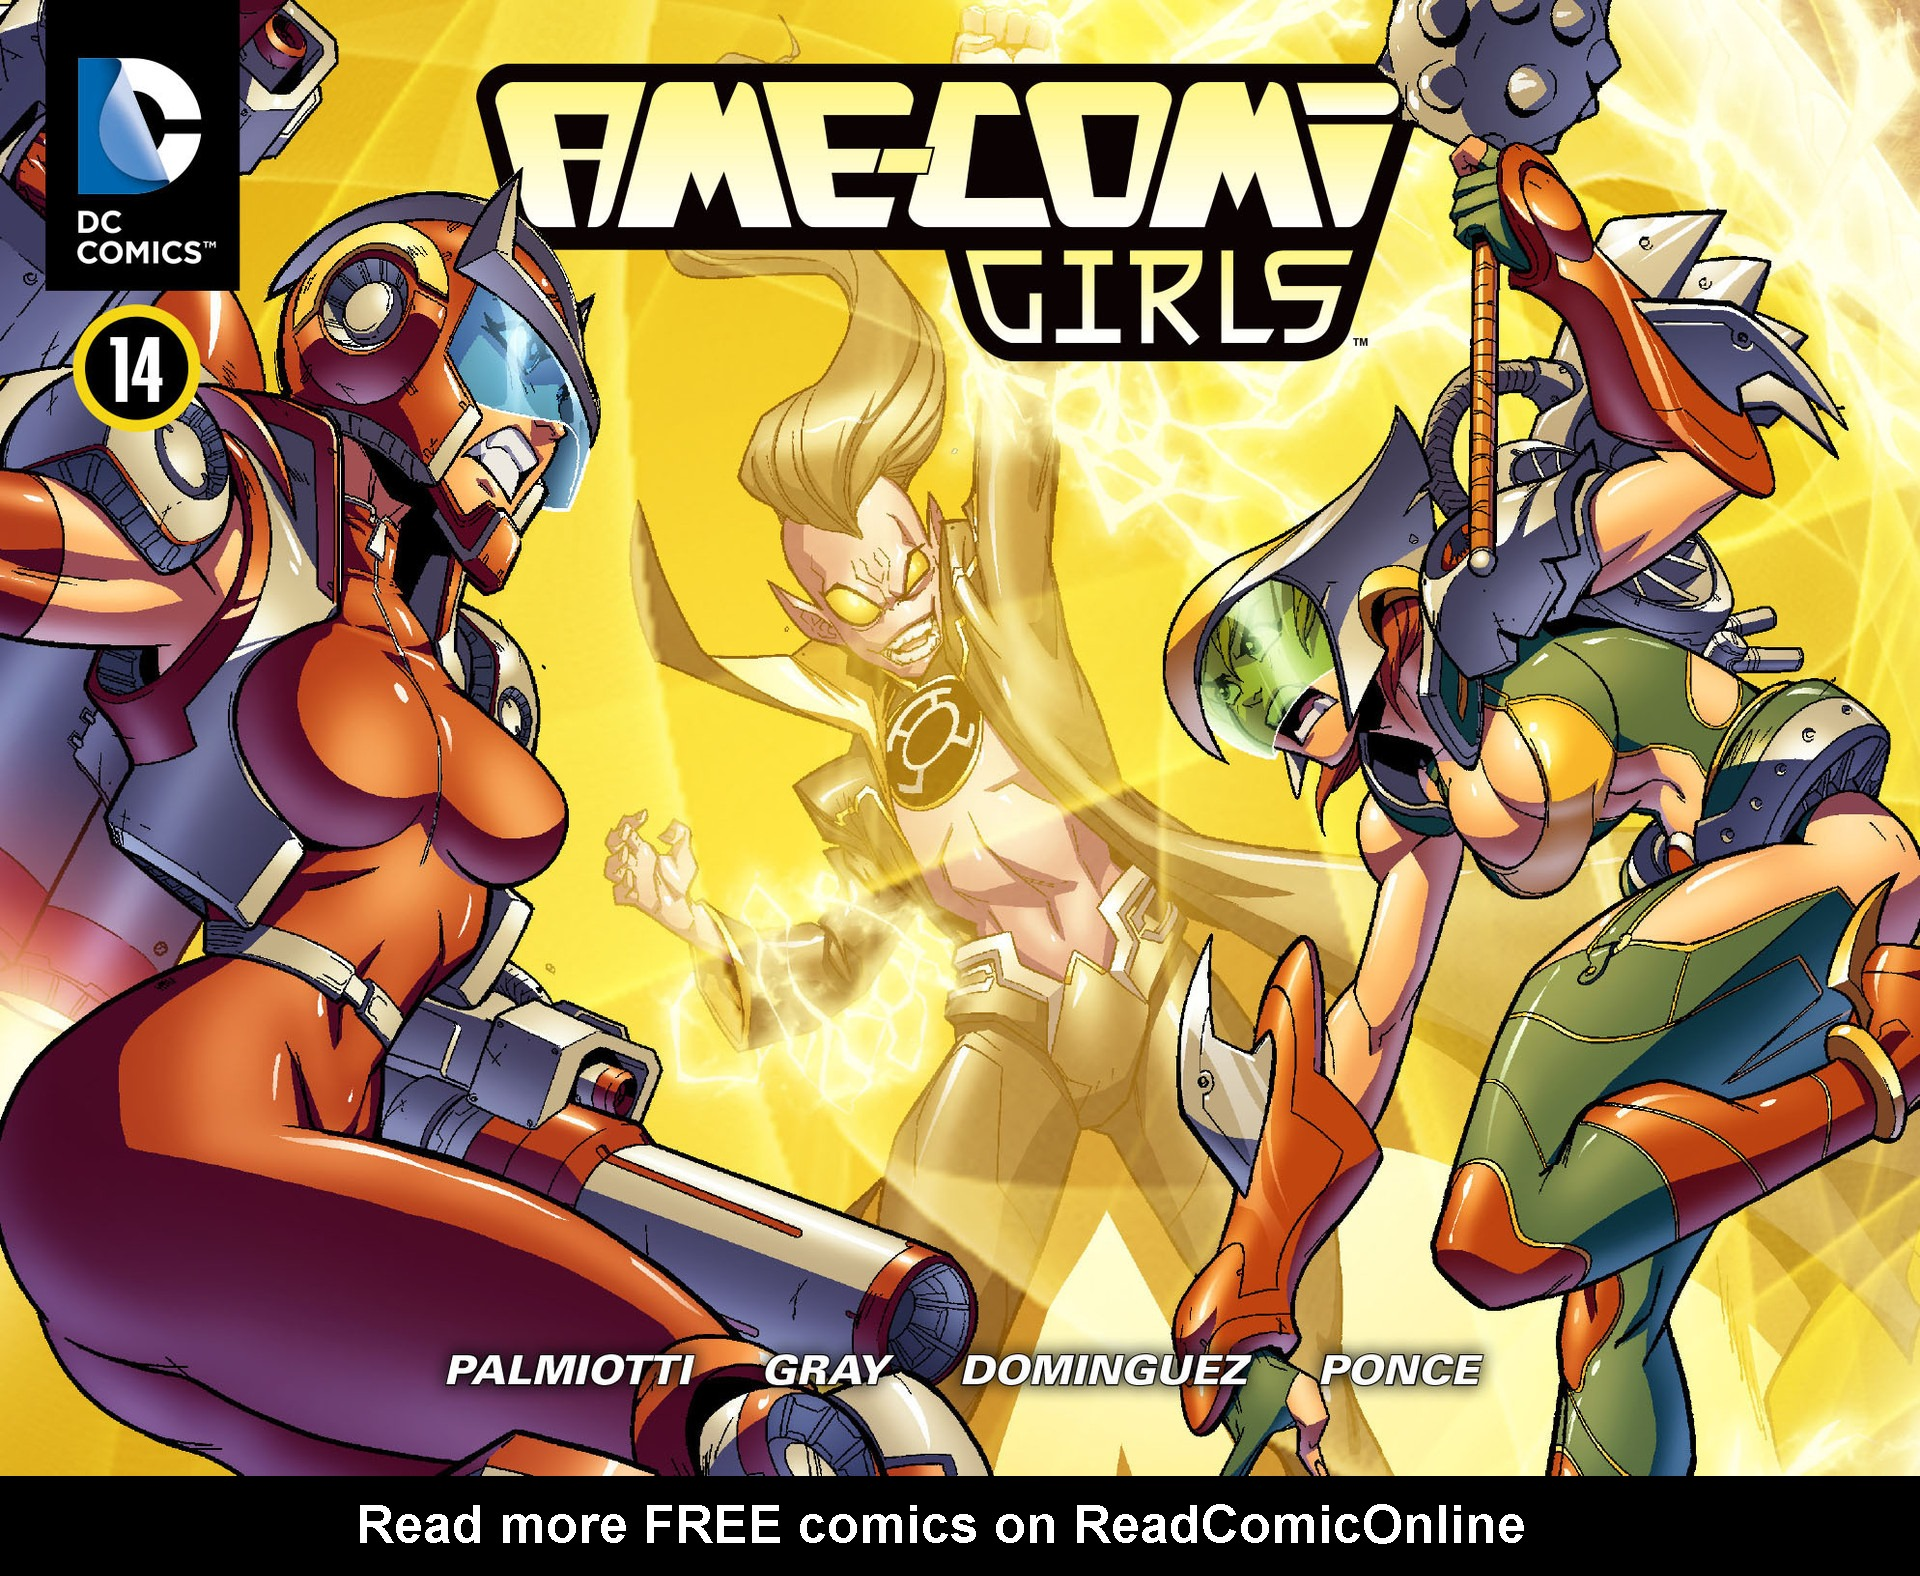 Read online Ame-Comi Girls comic -  Issue #14 - 1